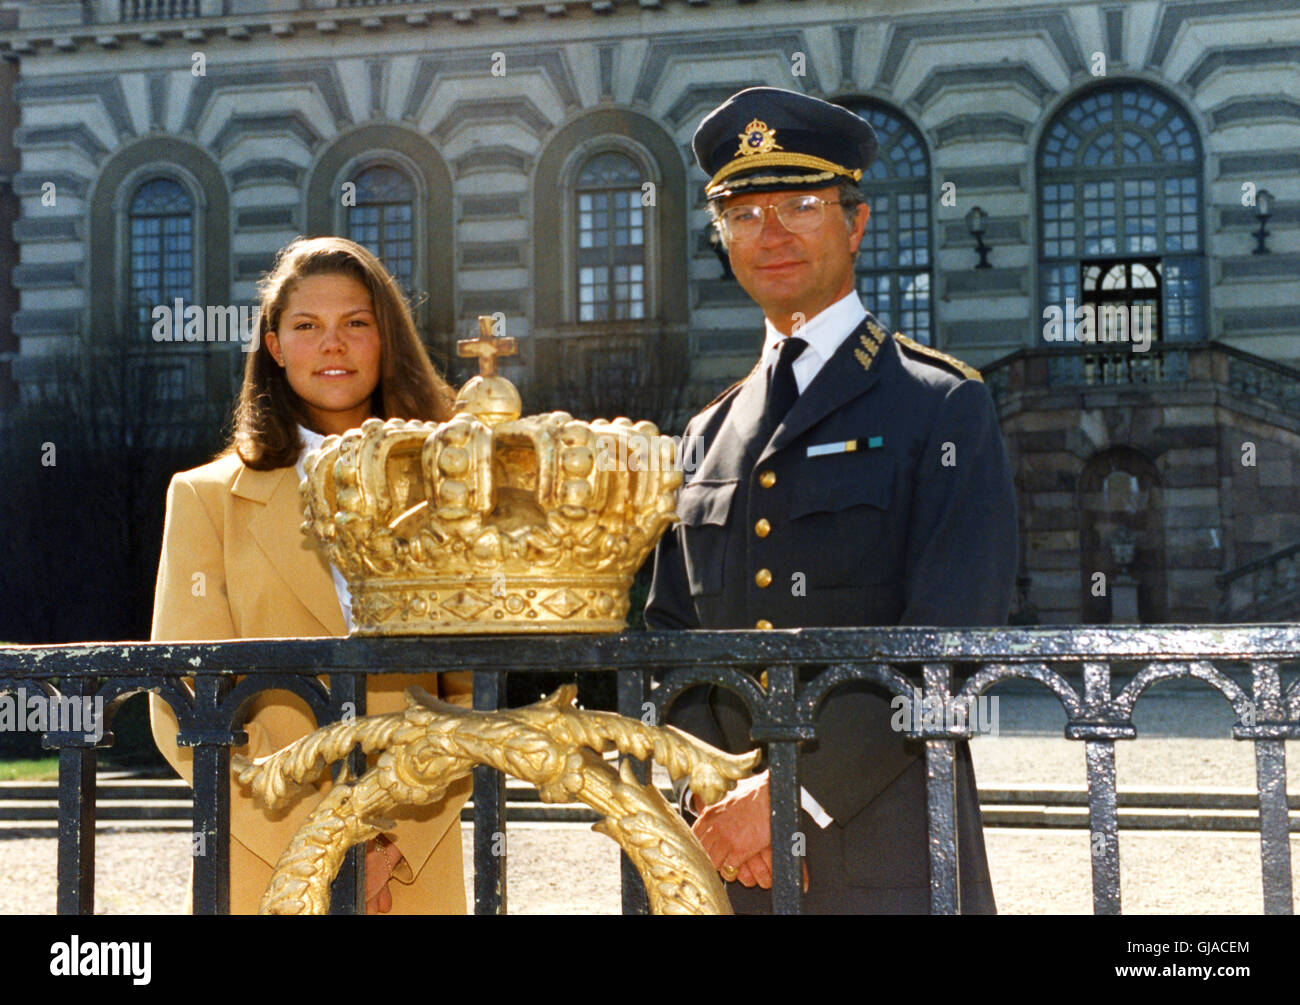 Swedish King CARL XVI GUSTAV and Crown Princess Victoria  beside a plated gold crown at Royal Palace at The Kings - Stock Image